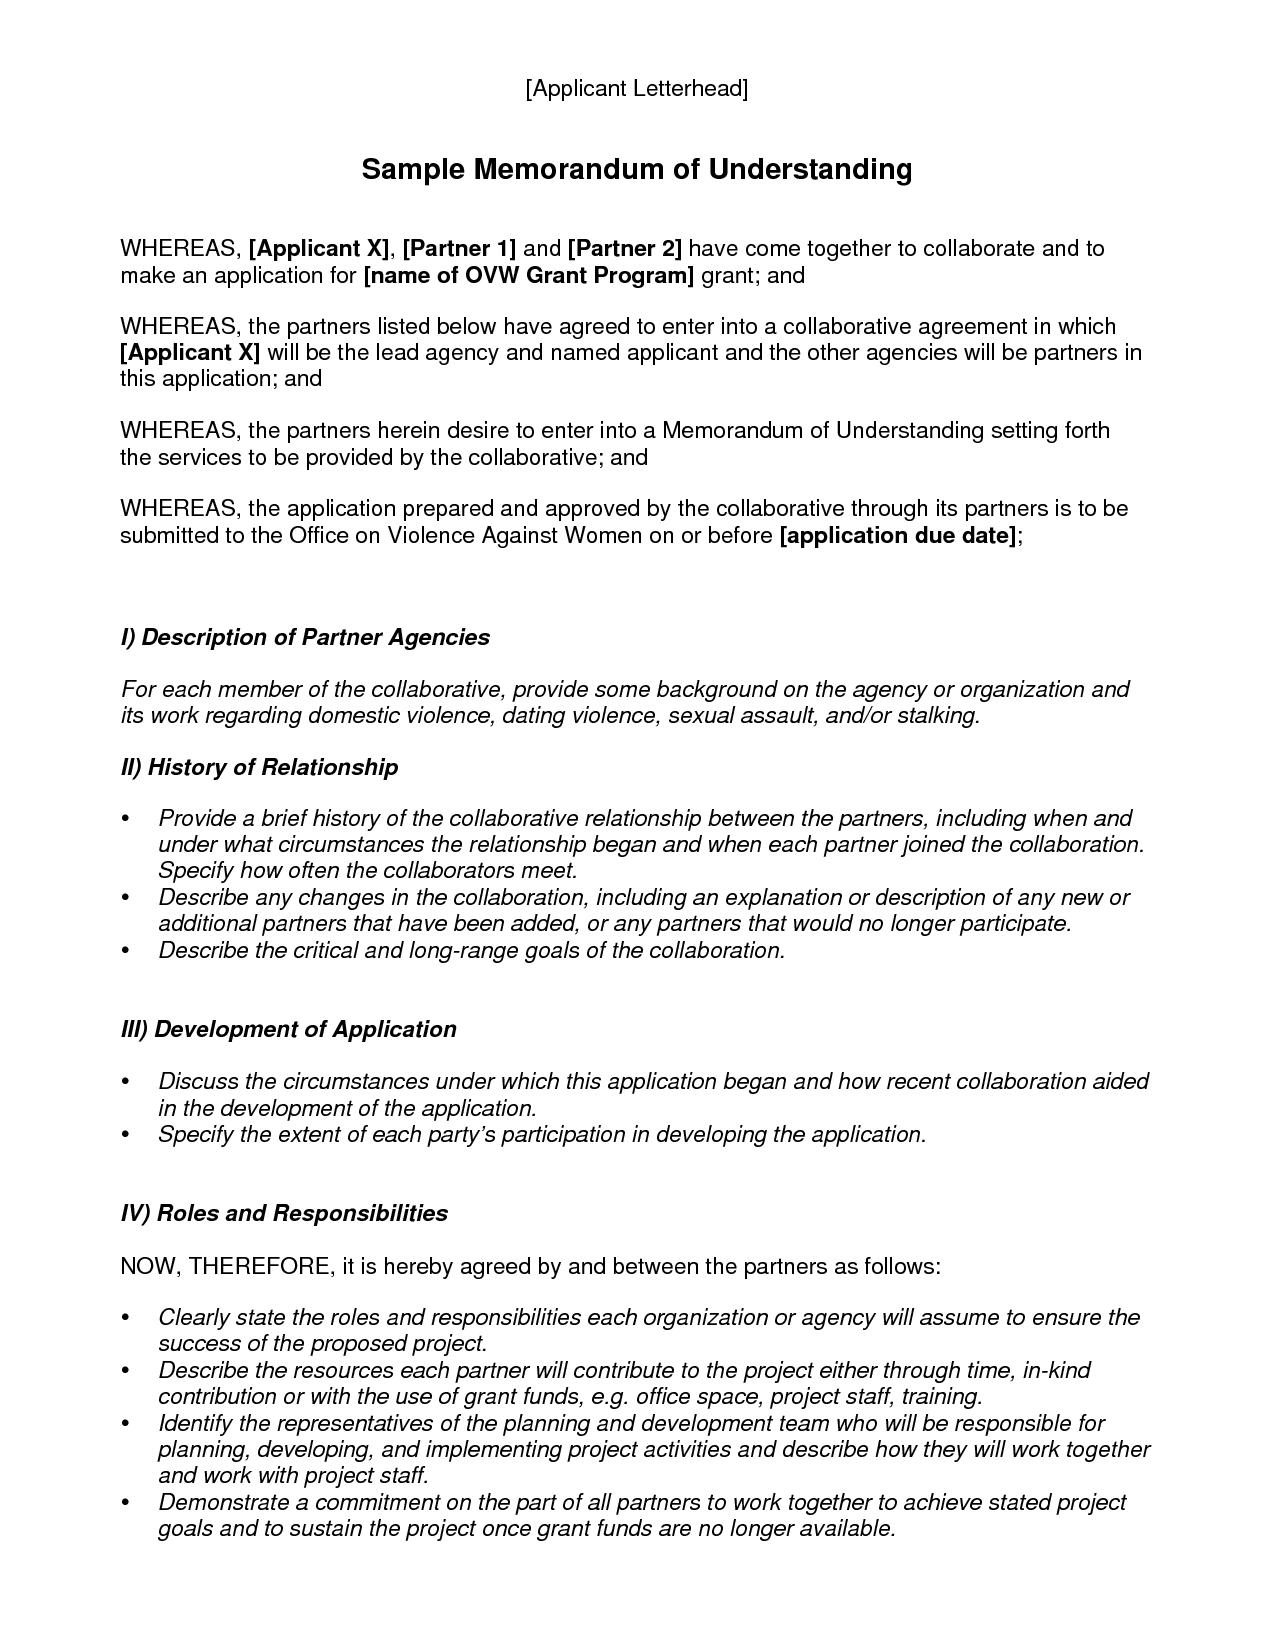 Memorandum Of Understanding Template  Best Template Collection Pertaining To Template For Memorandum Of Understanding In Business